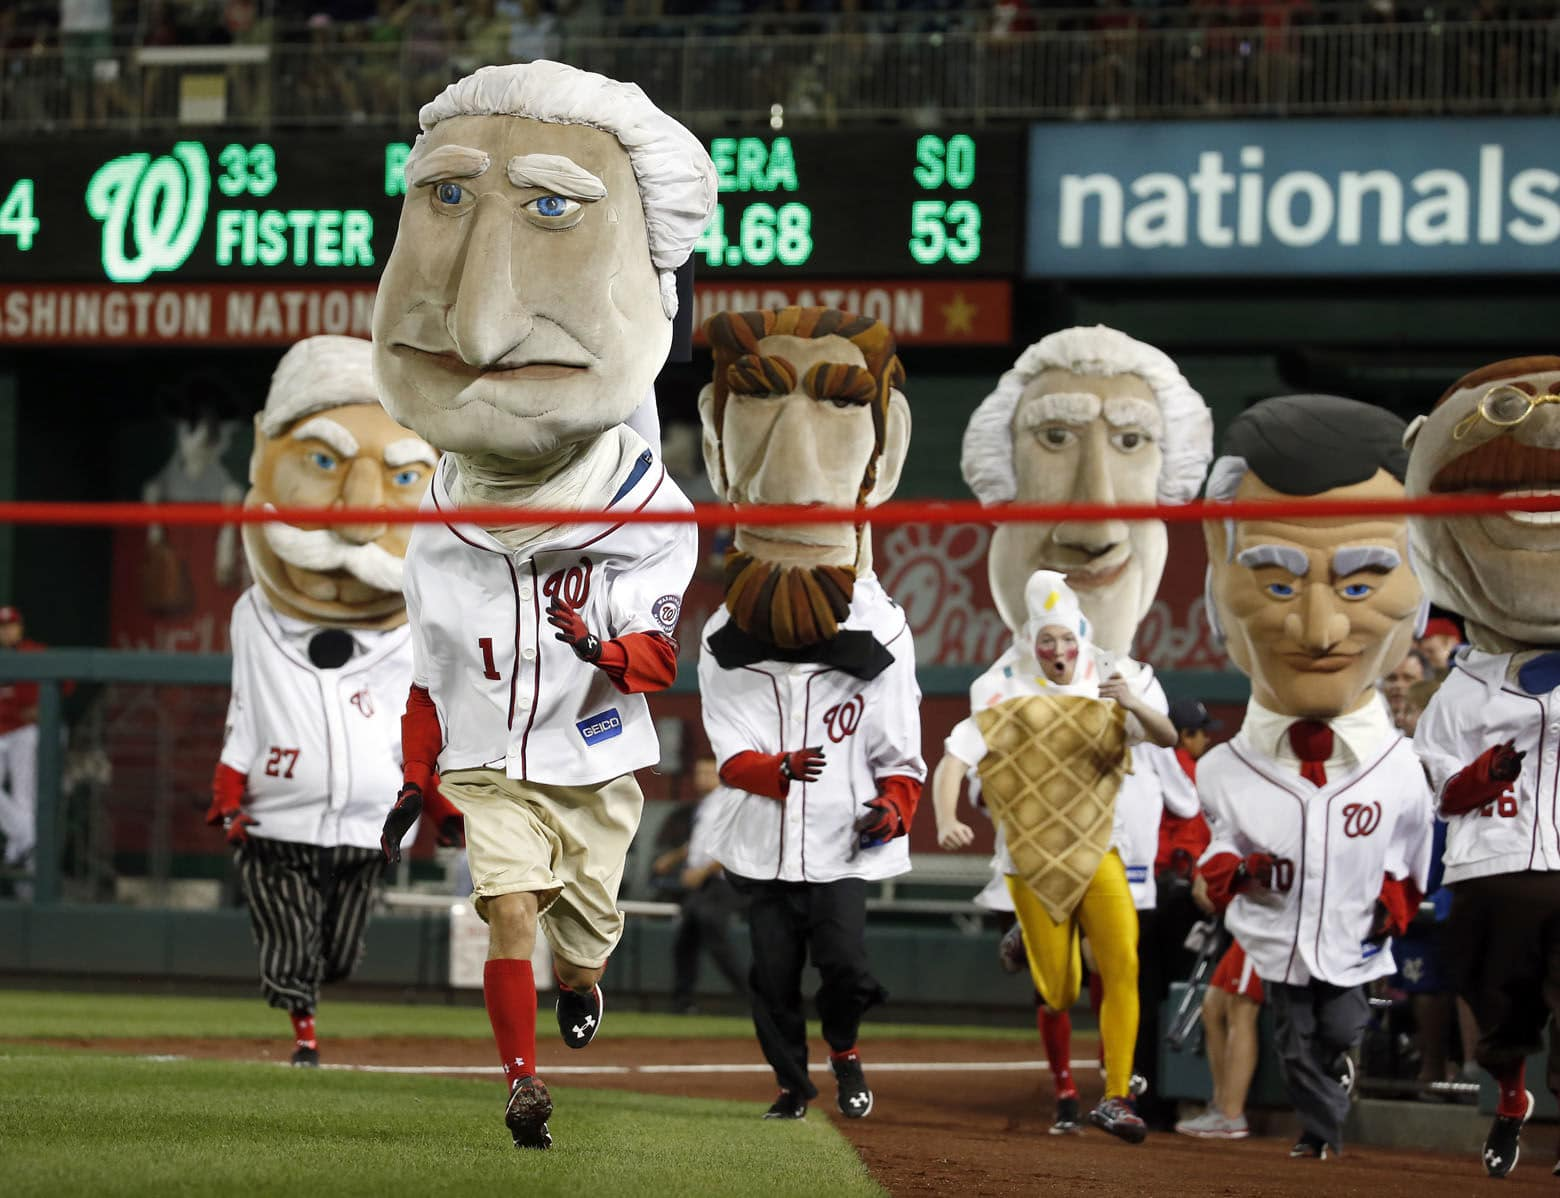 The Racing Presidents Washington Nationals mascots run during a baseball game against the San Diego Padres at Nationals Park, Wednesday, Aug. 26, 2015, in Washington. (AP Photo/Alex Brandon)